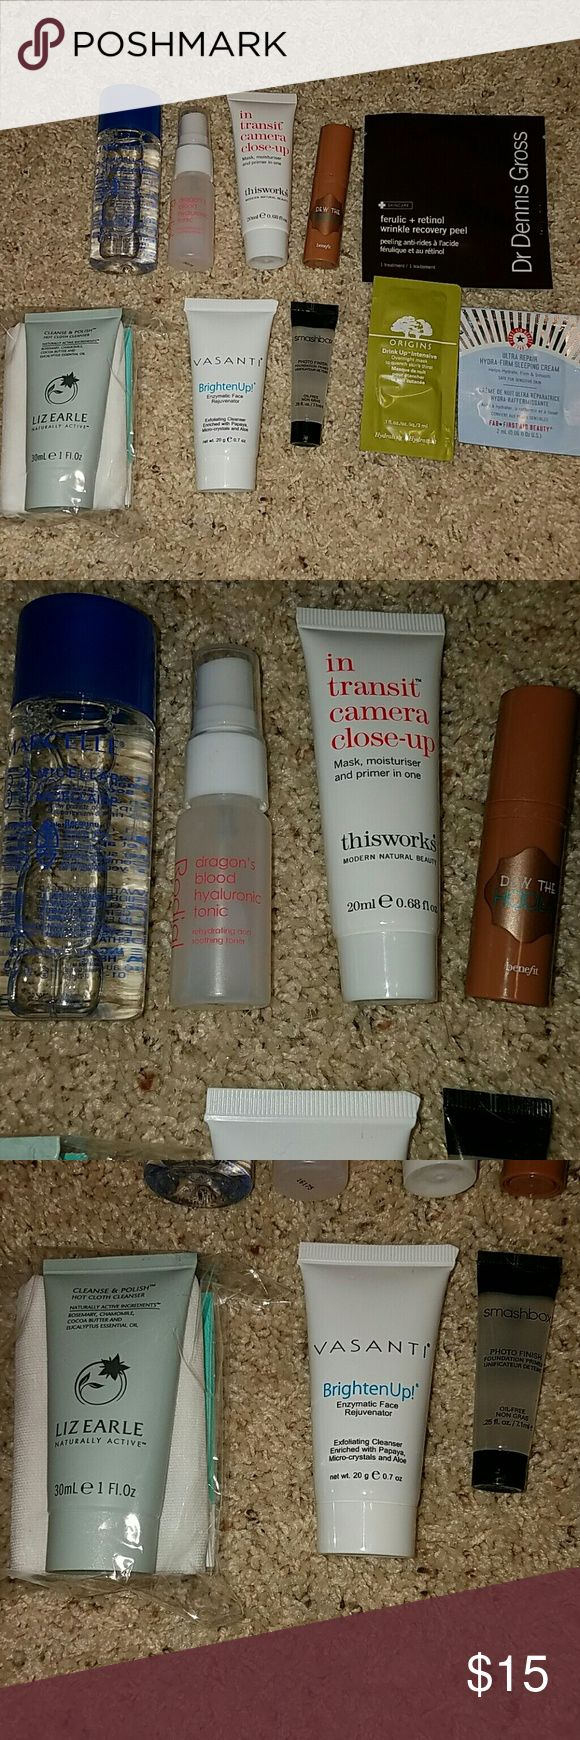 Sample Face Product Lot Brand New lot of face products. Try these samples to find your perfect fit before you buy full size! Never used!!!  - Marcelle 3 in 1 Micellar Solution 1.7 fl oz - Liz Earle Cleanse & Polish Hot Clith Cleanser 1 fl oz - Vasanti Brighten Up Face Rejuvenator .7 oz - This Works In Transit Camera Close Up .68 fl oz - Benefit Dew The Hoola Liquid Face Bronzer .16 fl oz - Smashbox Photo Finish Primer .25 fl oz - Rodial Dragon Blood Hyaluronic Tonic .05 fl oz - 3 foil packet…